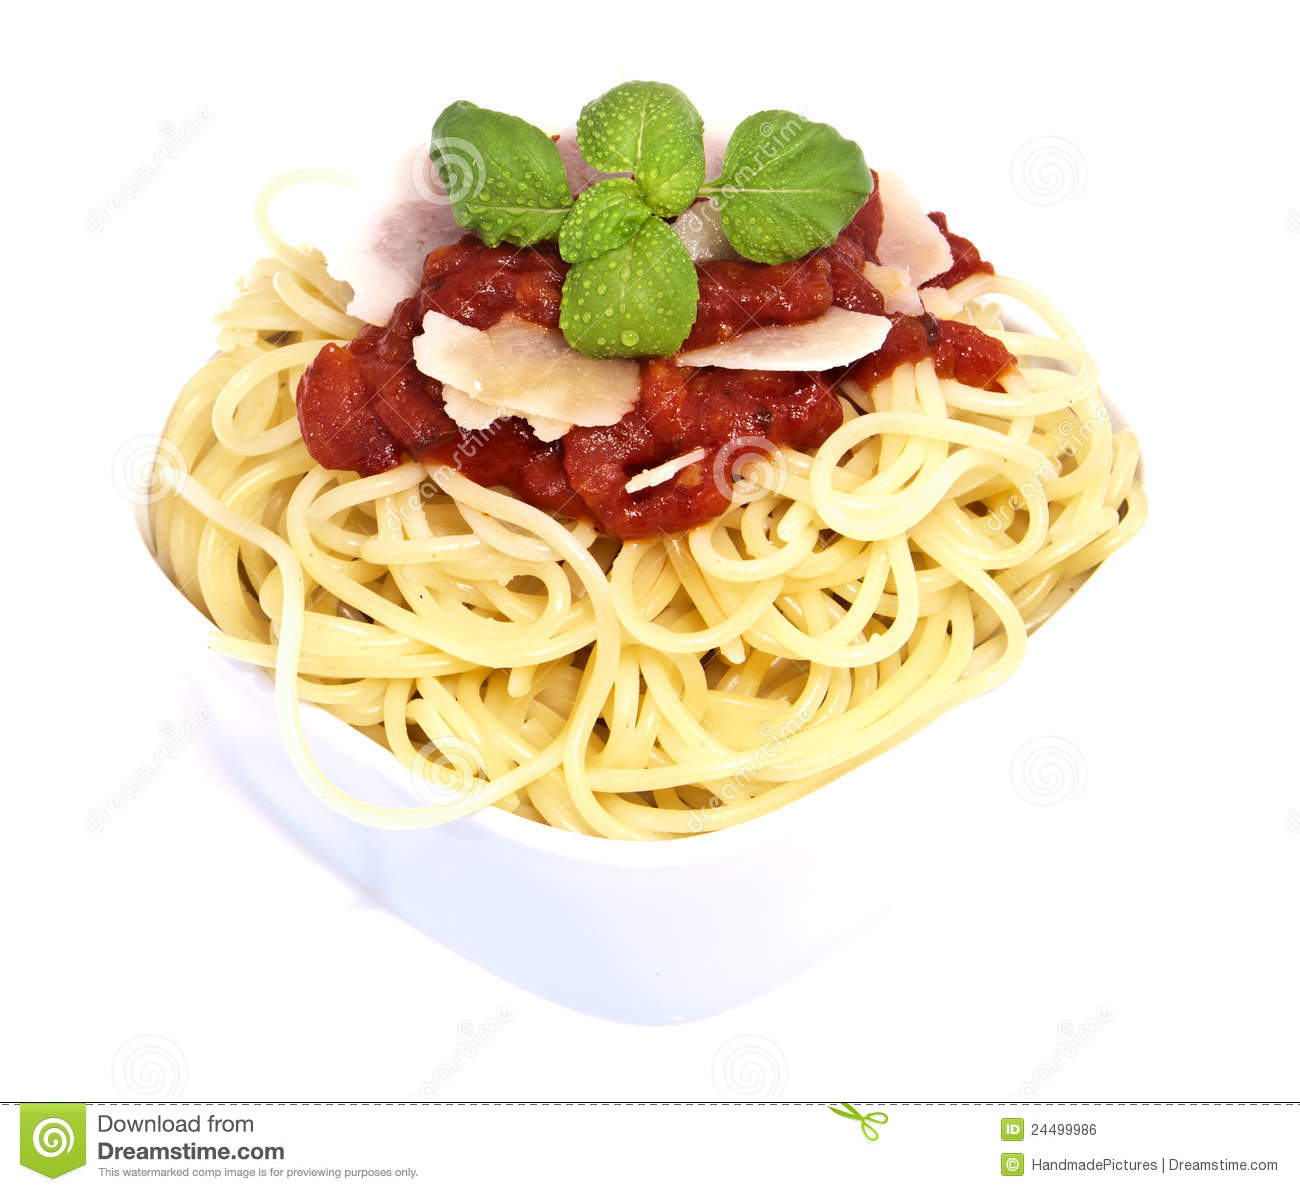 Fesh Spaghetti With Tomato Sauce And Parmesan Royalty Free Stock Image ...